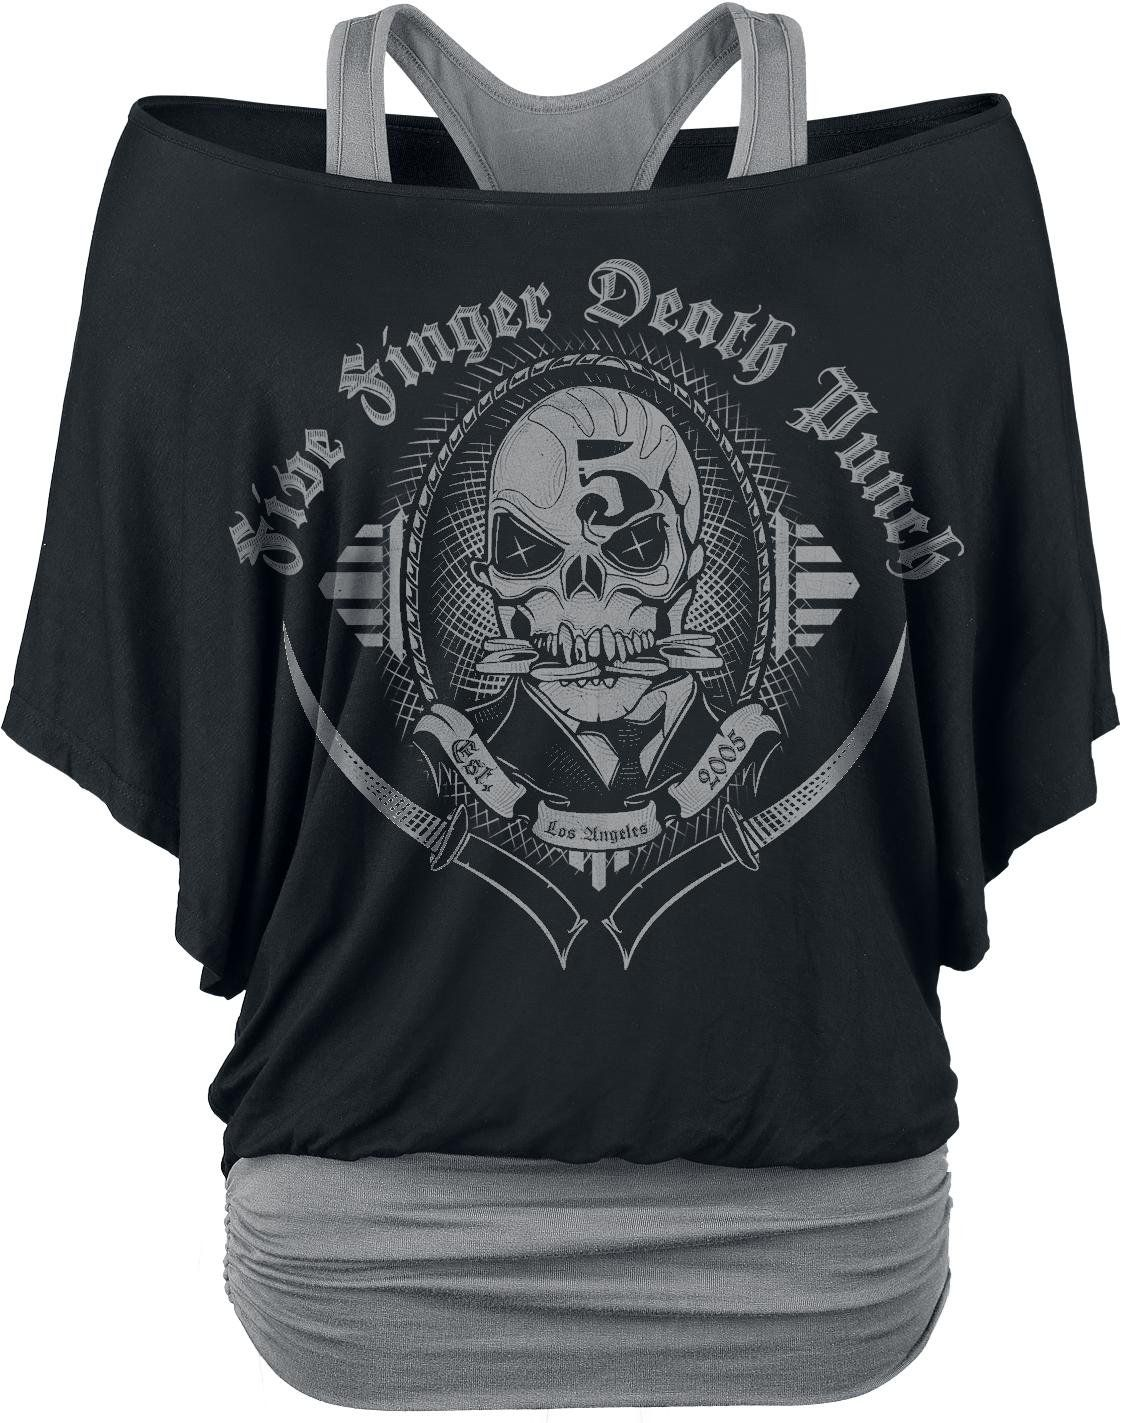 Five Finger Death Punch Get Cut Girls Shirt Black Grey S My Style Badly Drawn Tshirt Short Circuit Mens Buy Online At Grindstore Band Shirts